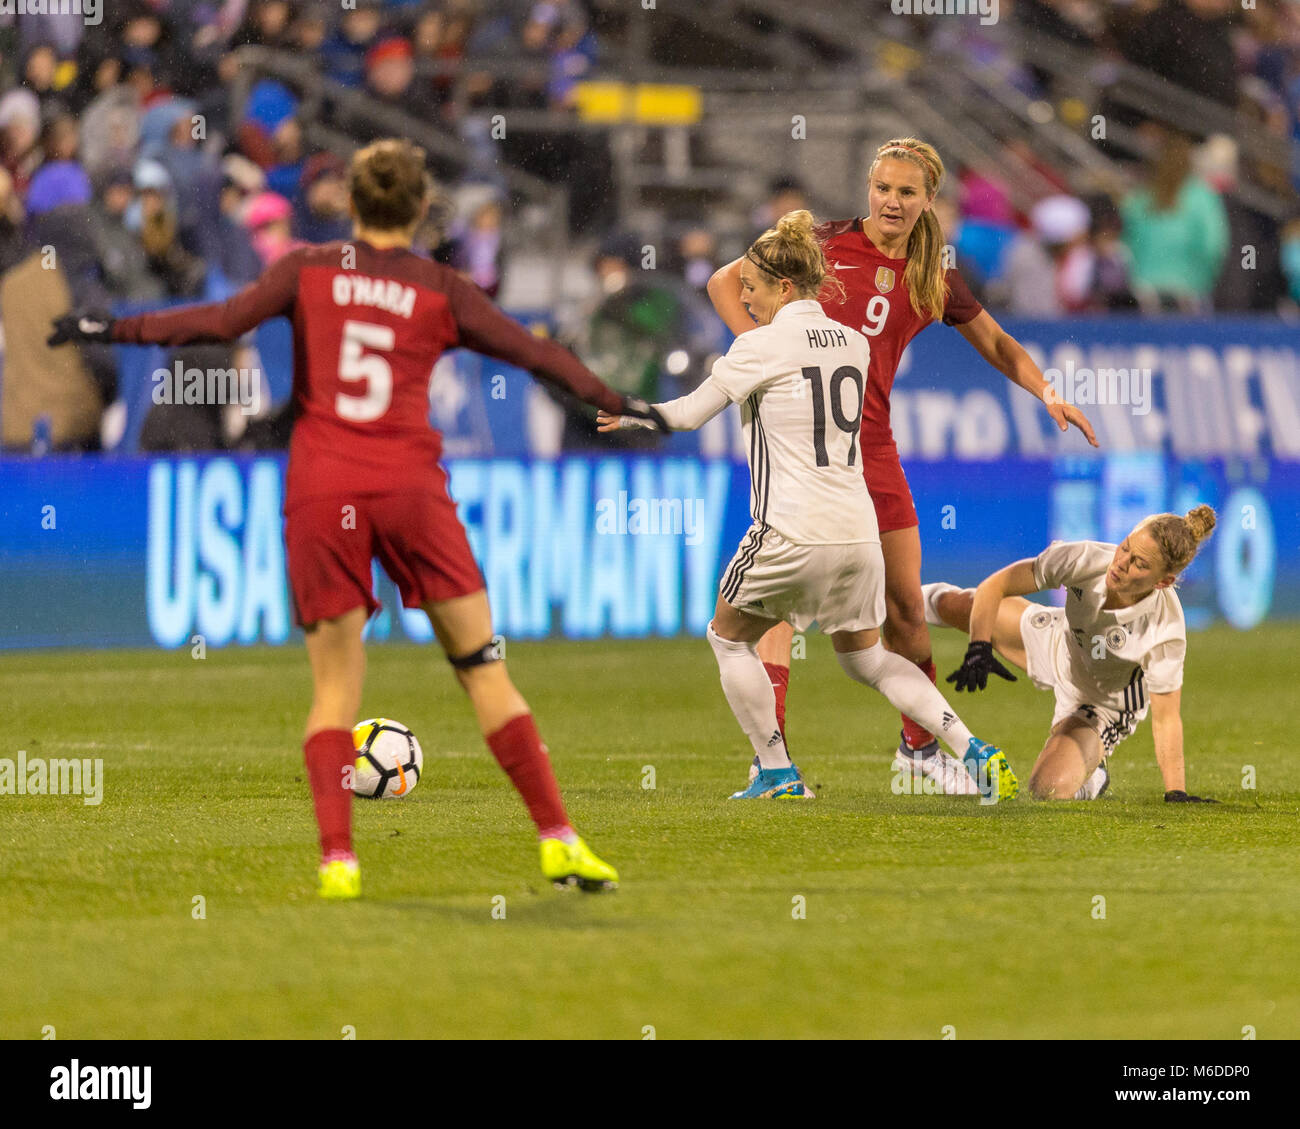 German FW Svenja Huth scrambles for the ball after her teammate looses possesion - Stock Image